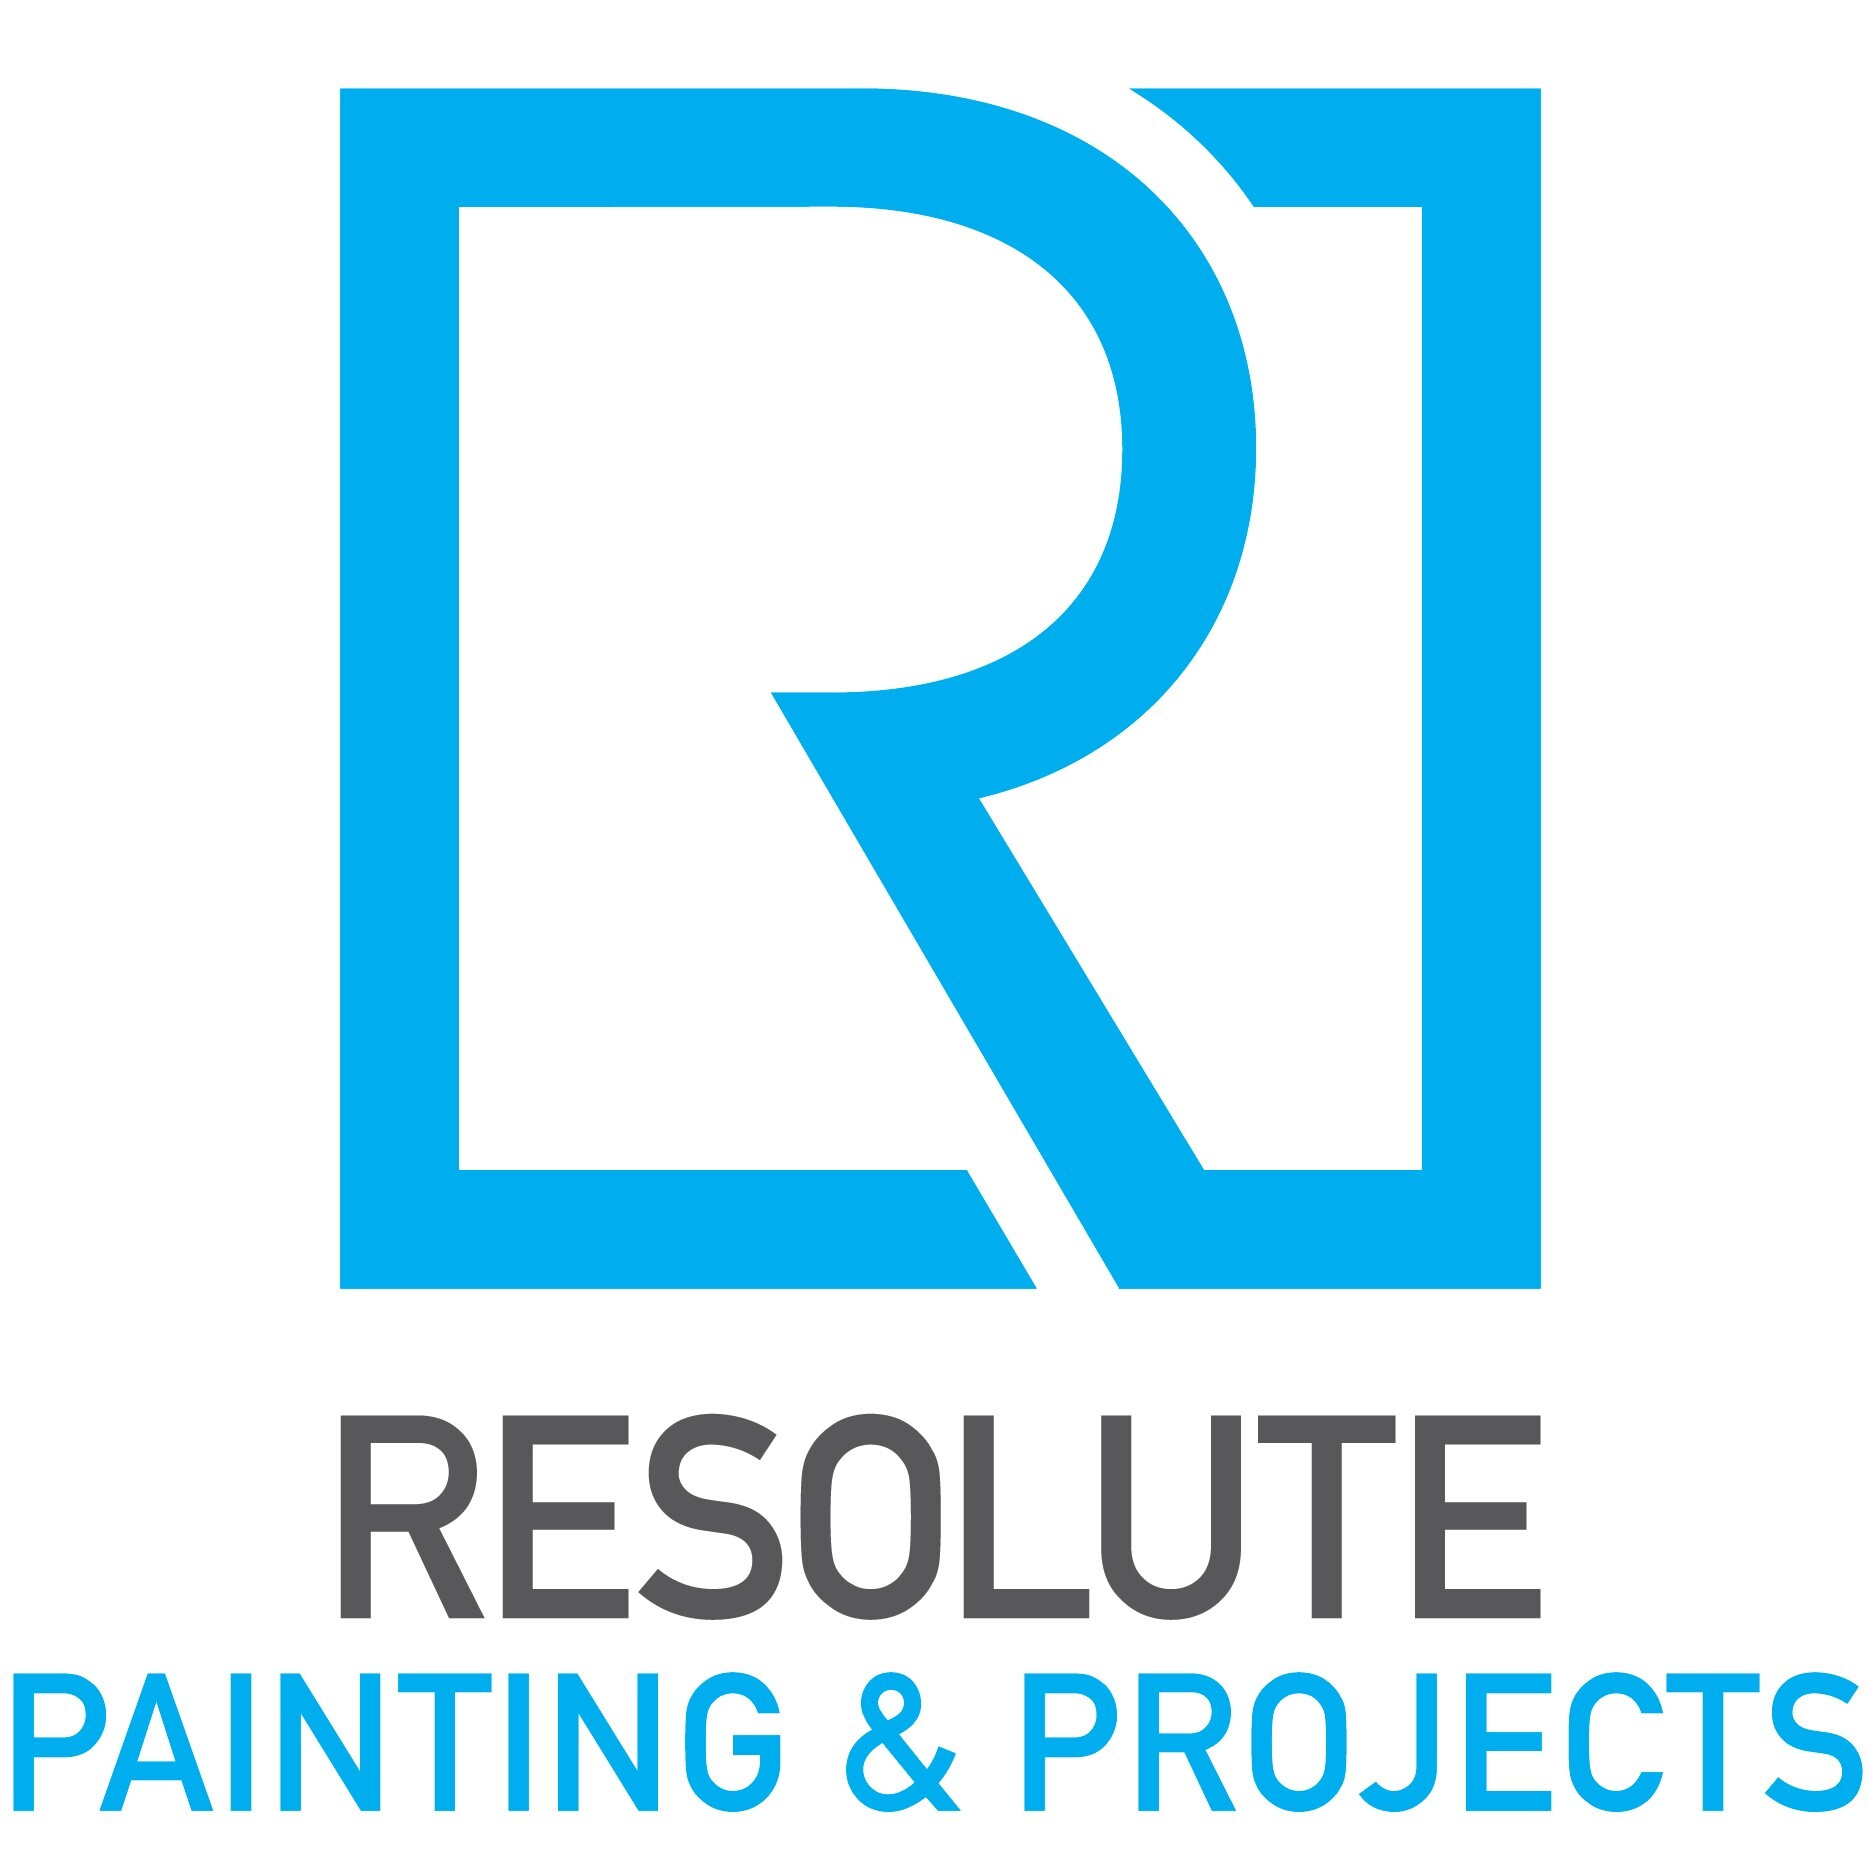 RESOLUTE GROUP LOGO - PAINTING_PROJECTS FINAL_small